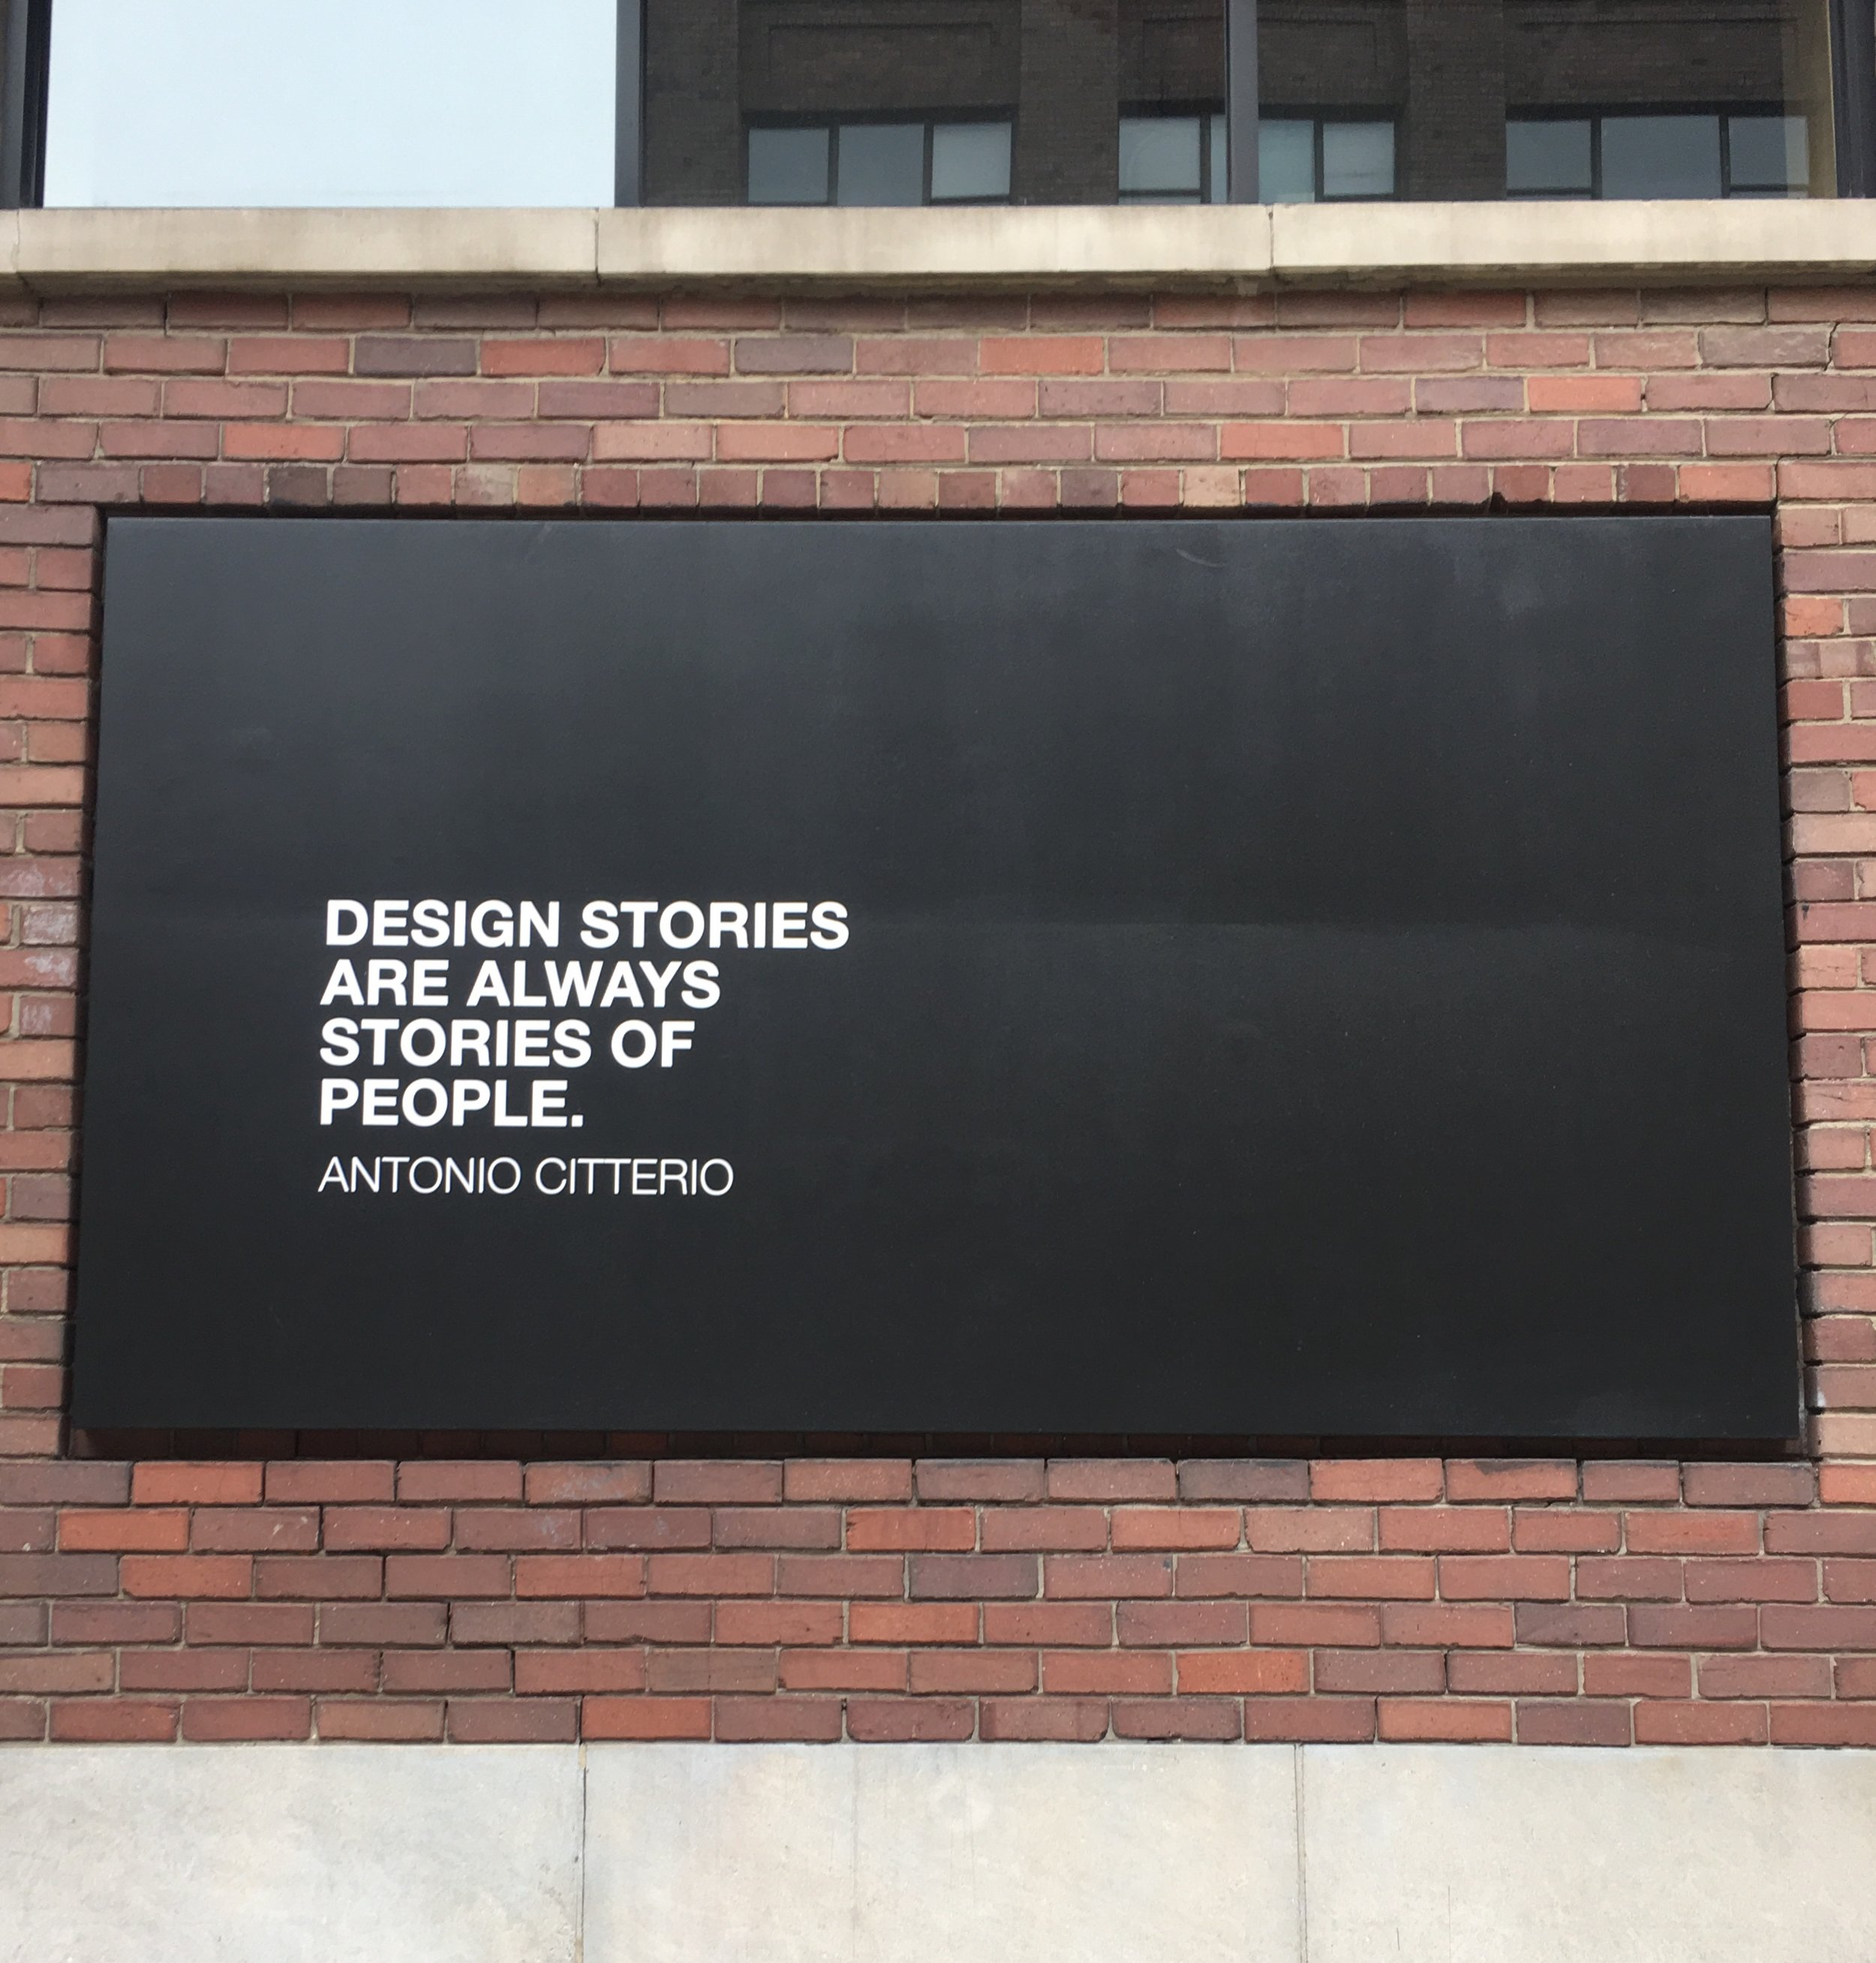 Shout out to the lighting design store near the office for hanging this awesome piece outside.